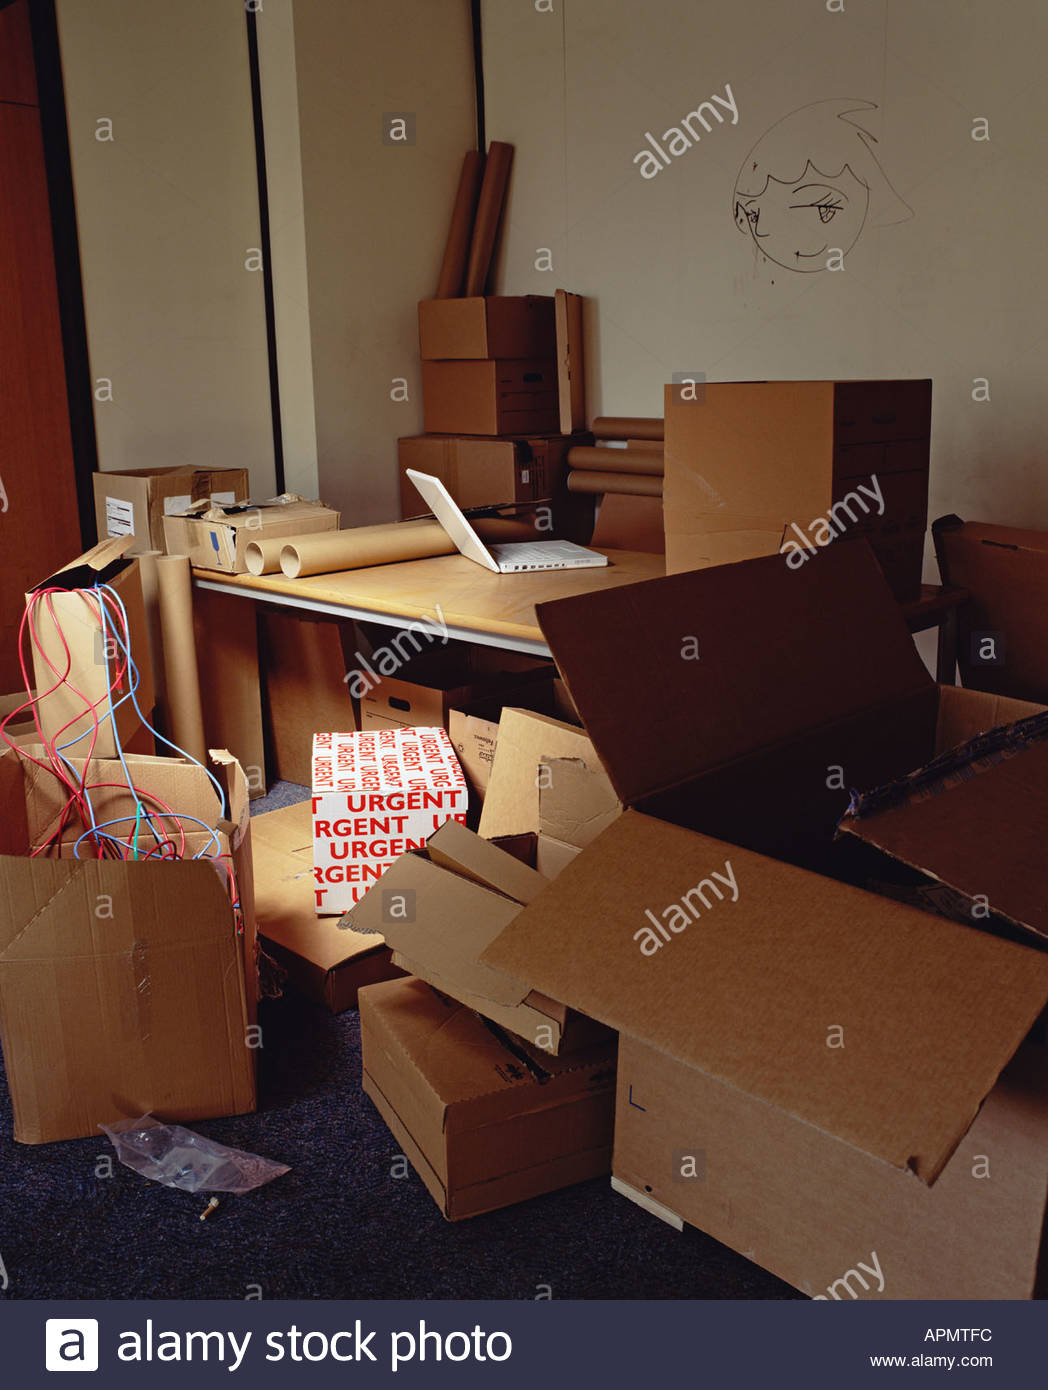 Cardboard boxes in office - Stock Image